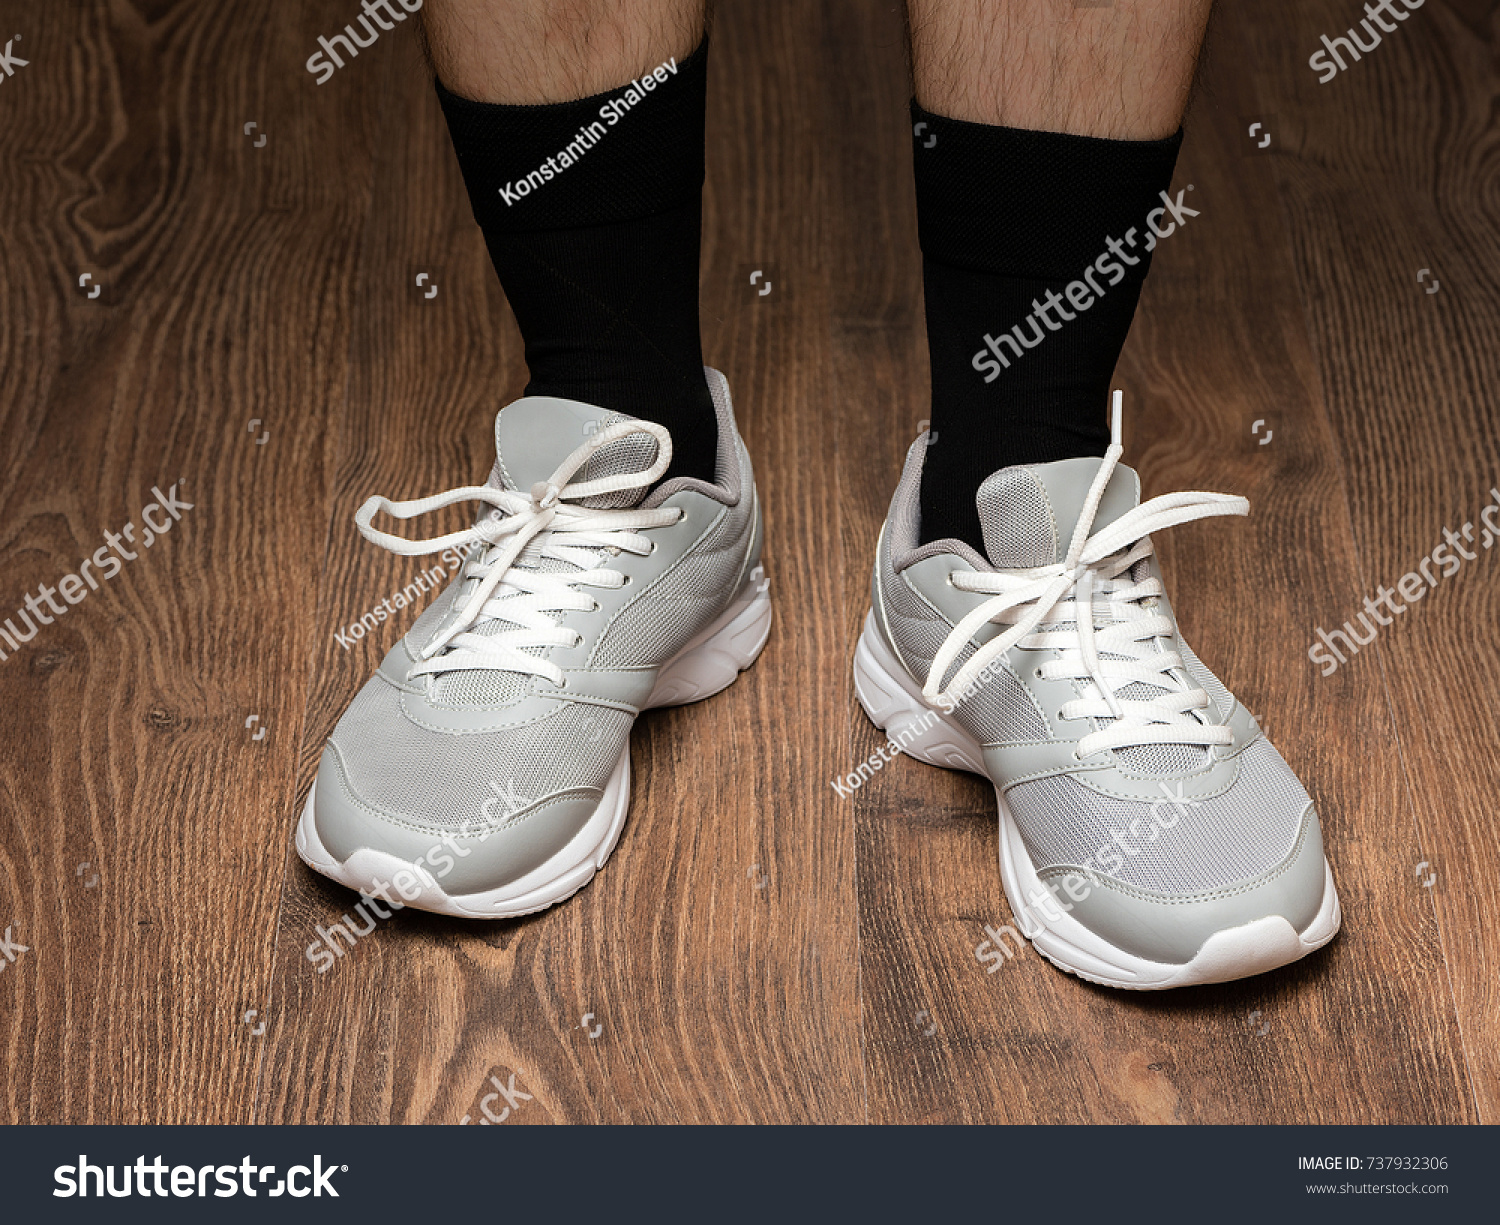 e9b5a0450b Pair of men s feet in white gray sneakers and black socks on white brown  floor background